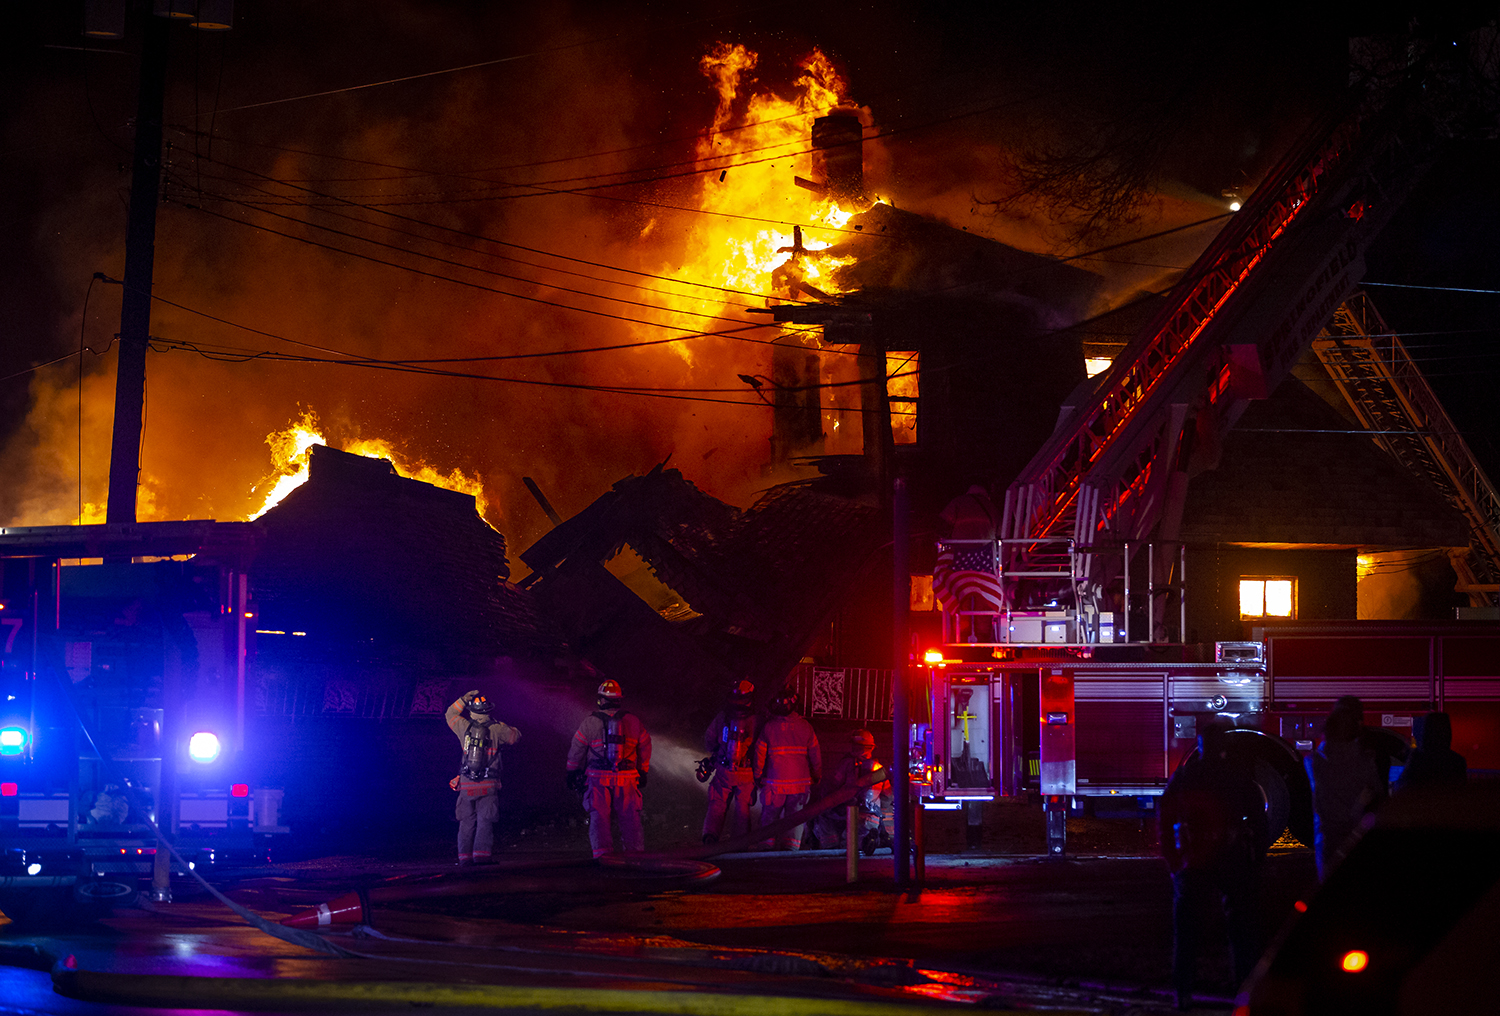 The Springfield Fire Department contends with sustained winds over 20 mph as they battle a structure fire that has fully engulfed a building at the corner of South Second Street and East Laurel Street, Sunday, March 10, 2019, in Springfield, Ill.